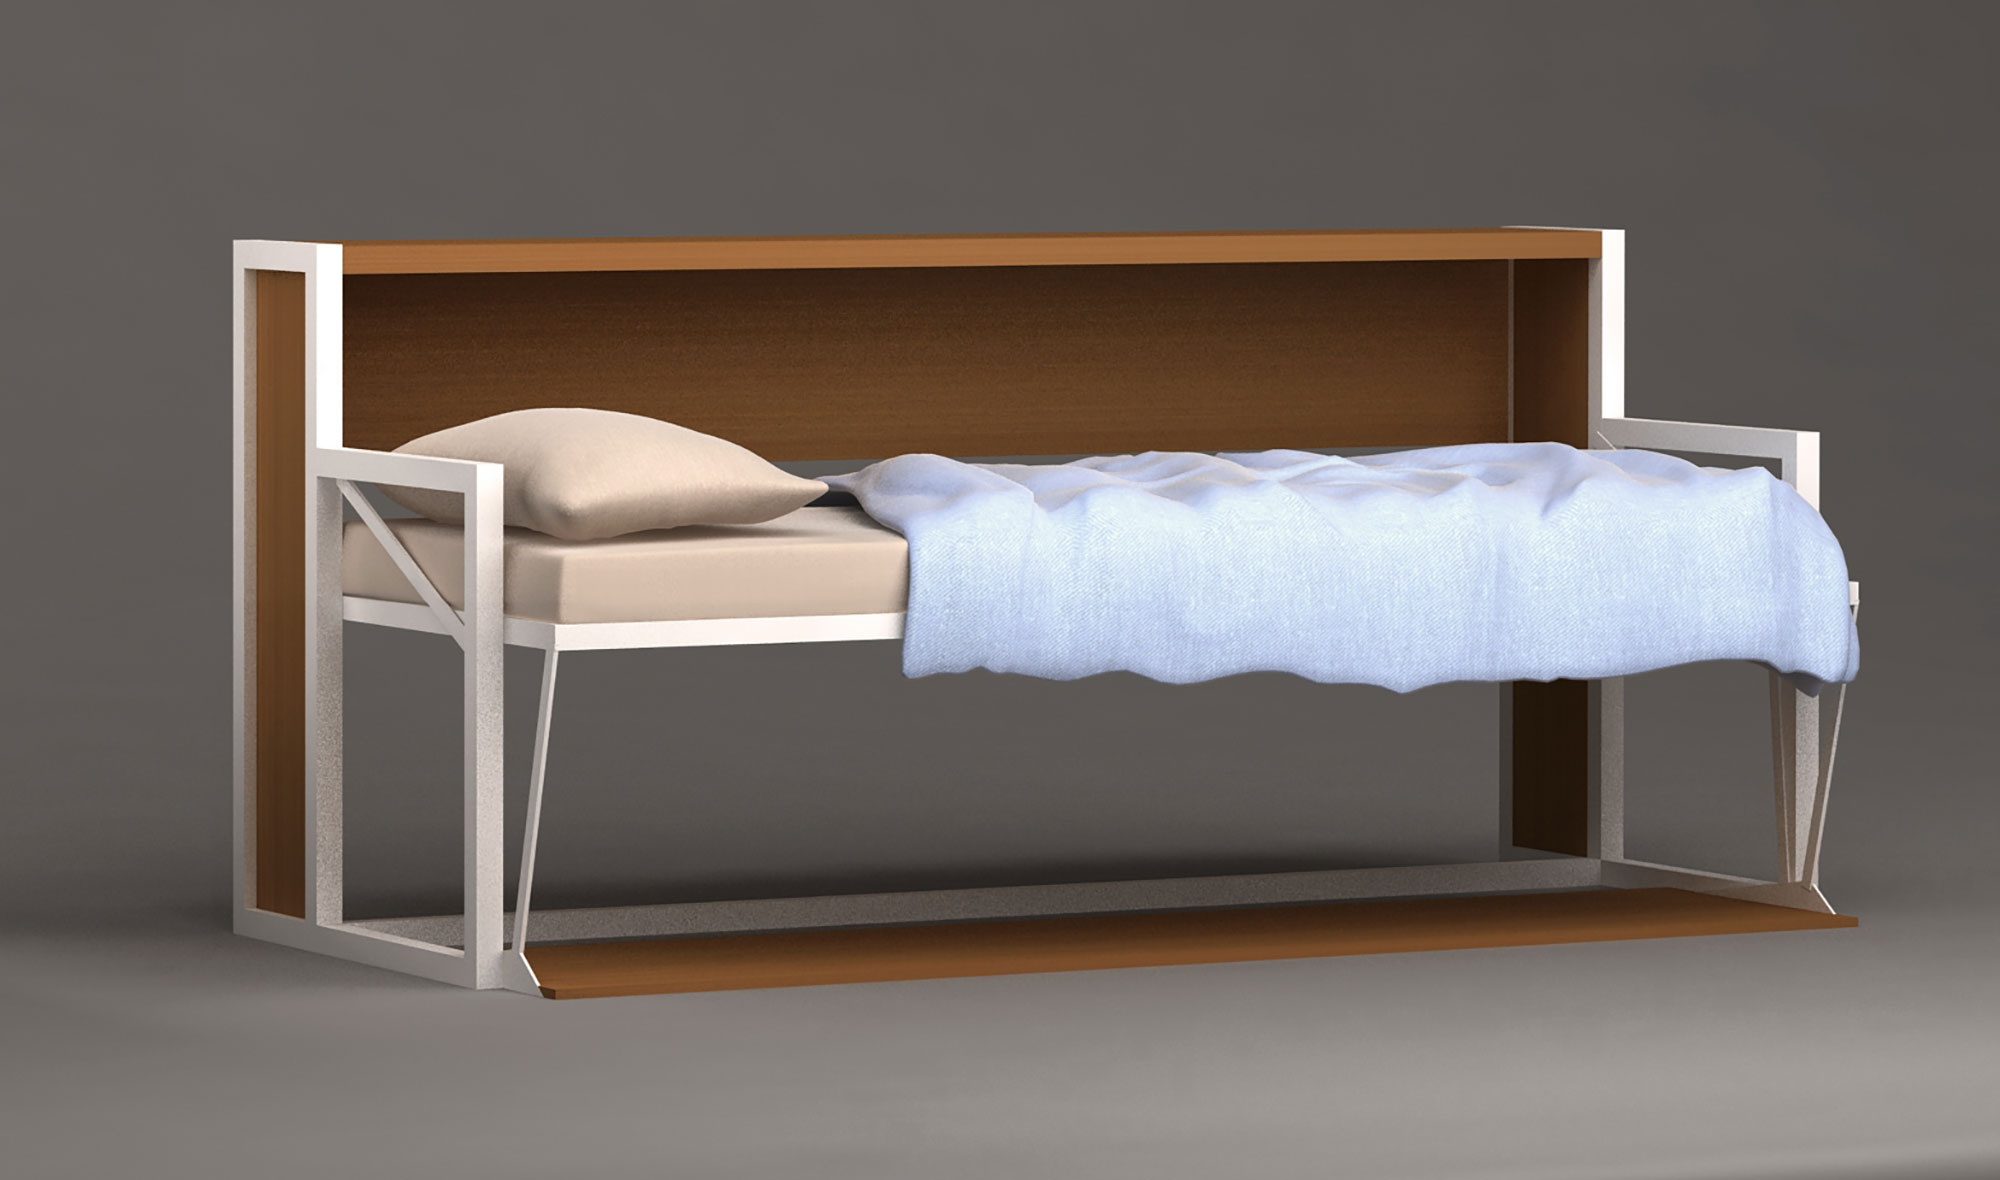 Cama Abatible Convertible En Escritorio B Esk No Disponible En  # Muebles Covertibles